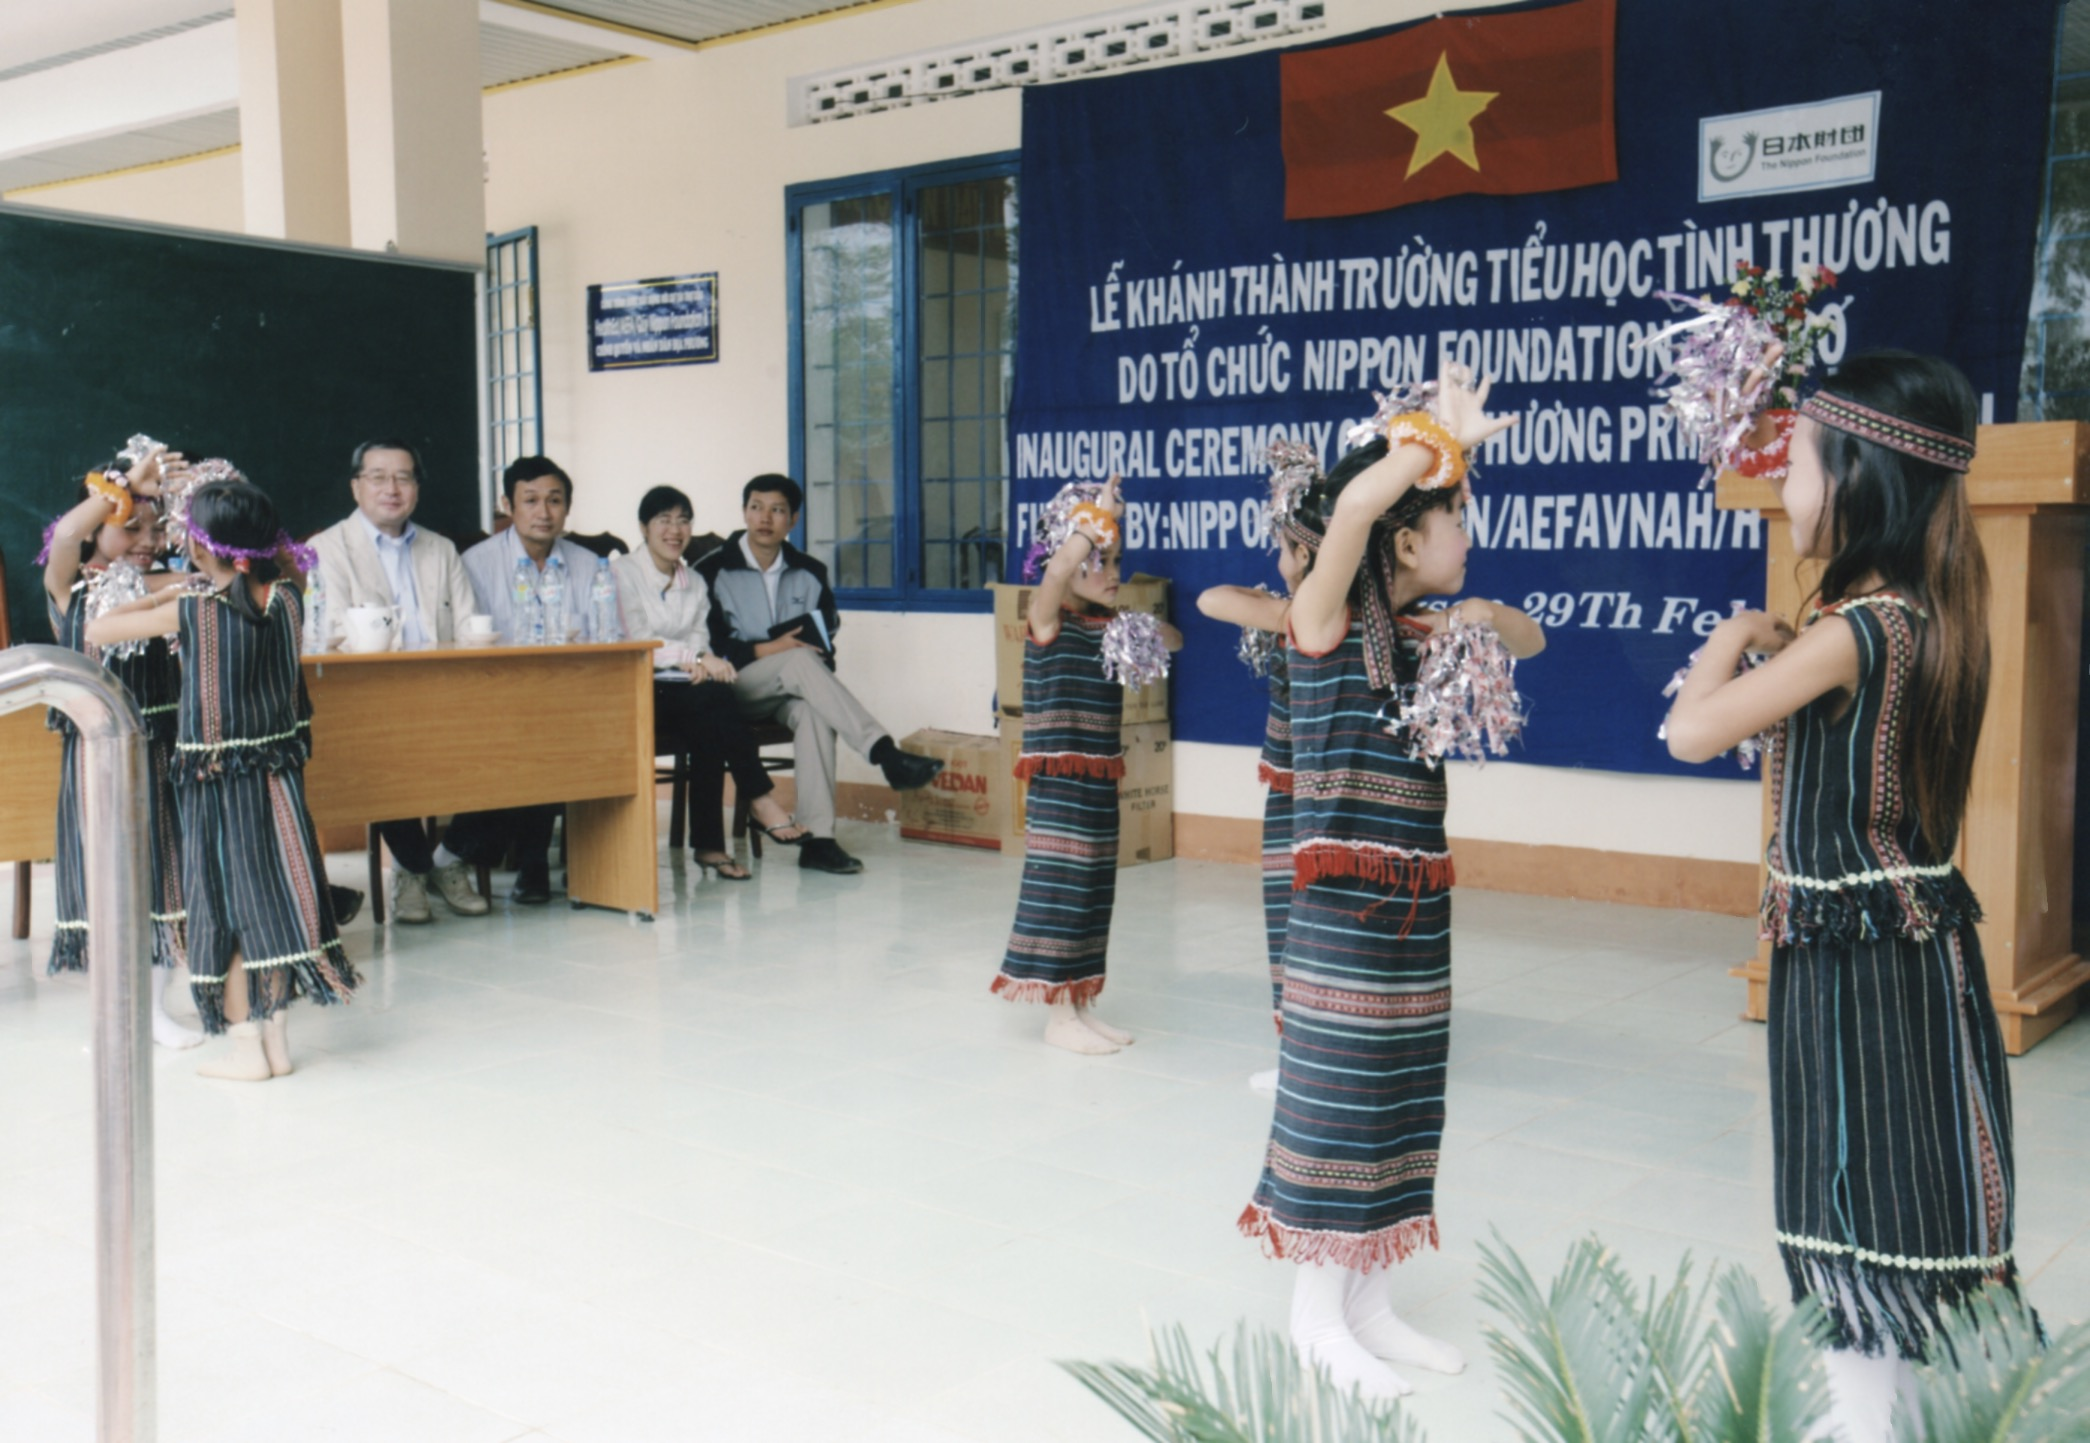 Opening Ceremony for a Primary School in Kontum Prov. (Central Highland) 2008 - 15.jpeg